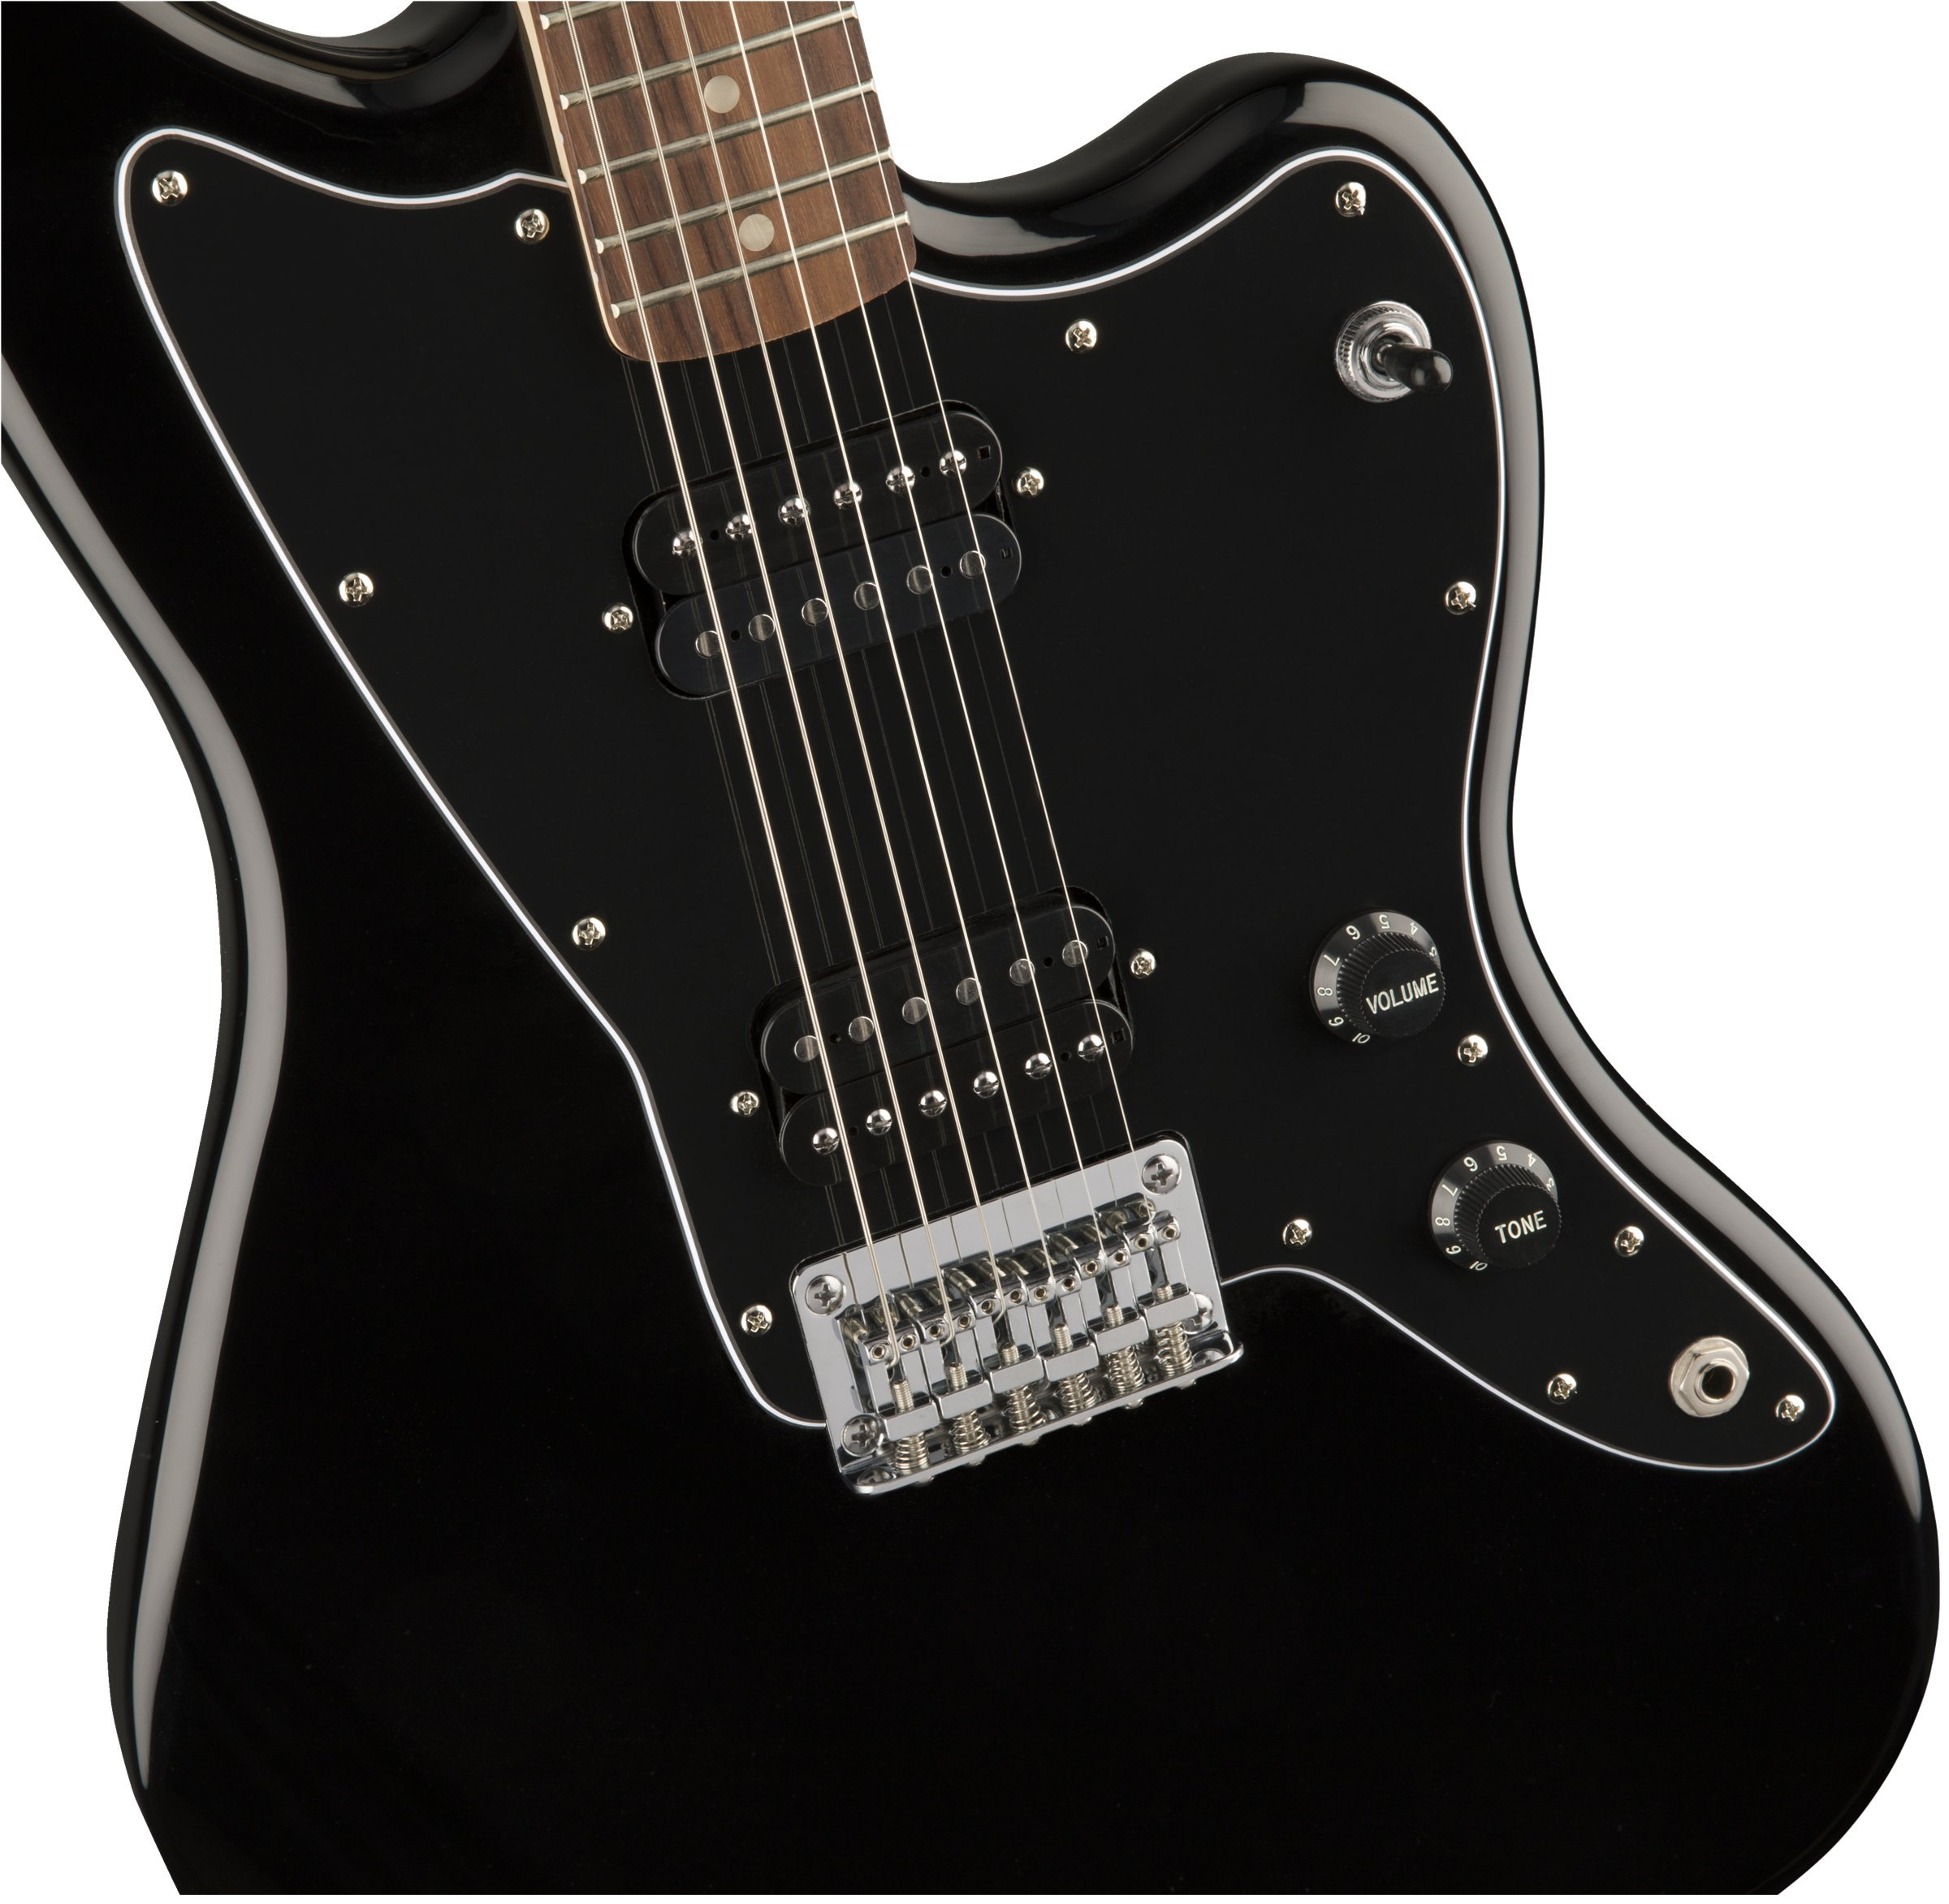 squier by fender affinity series jazzmaster hh electric guitar laurel fingerboard black. Black Bedroom Furniture Sets. Home Design Ideas